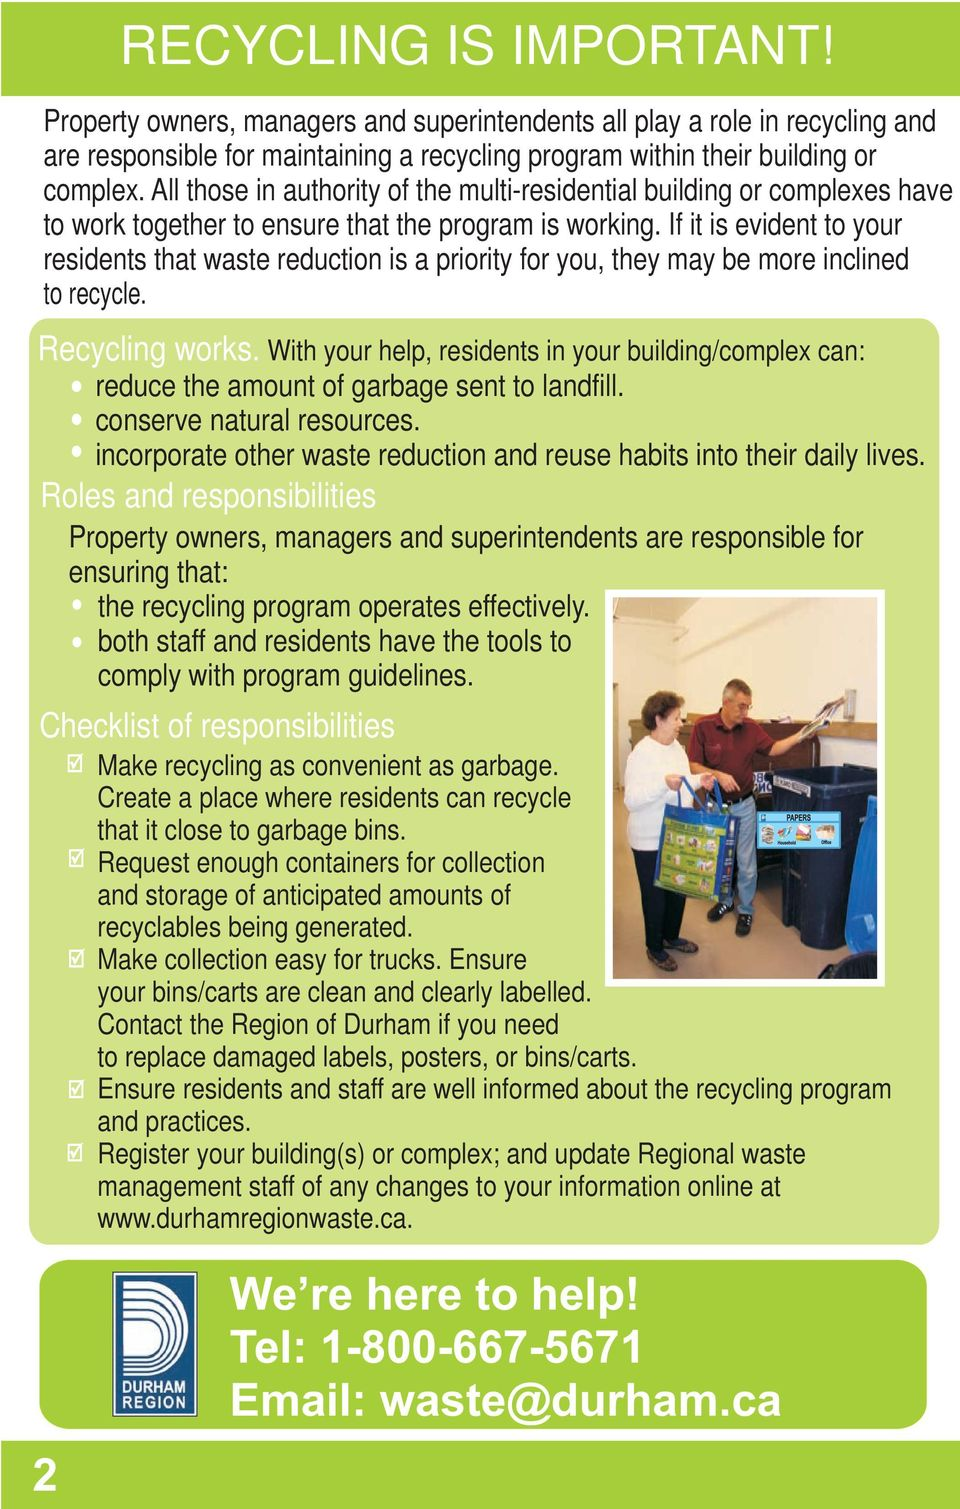 If it is evident to your residents that waste reduction is a priority for you, they may be more inclined to recycle. Recycling works.